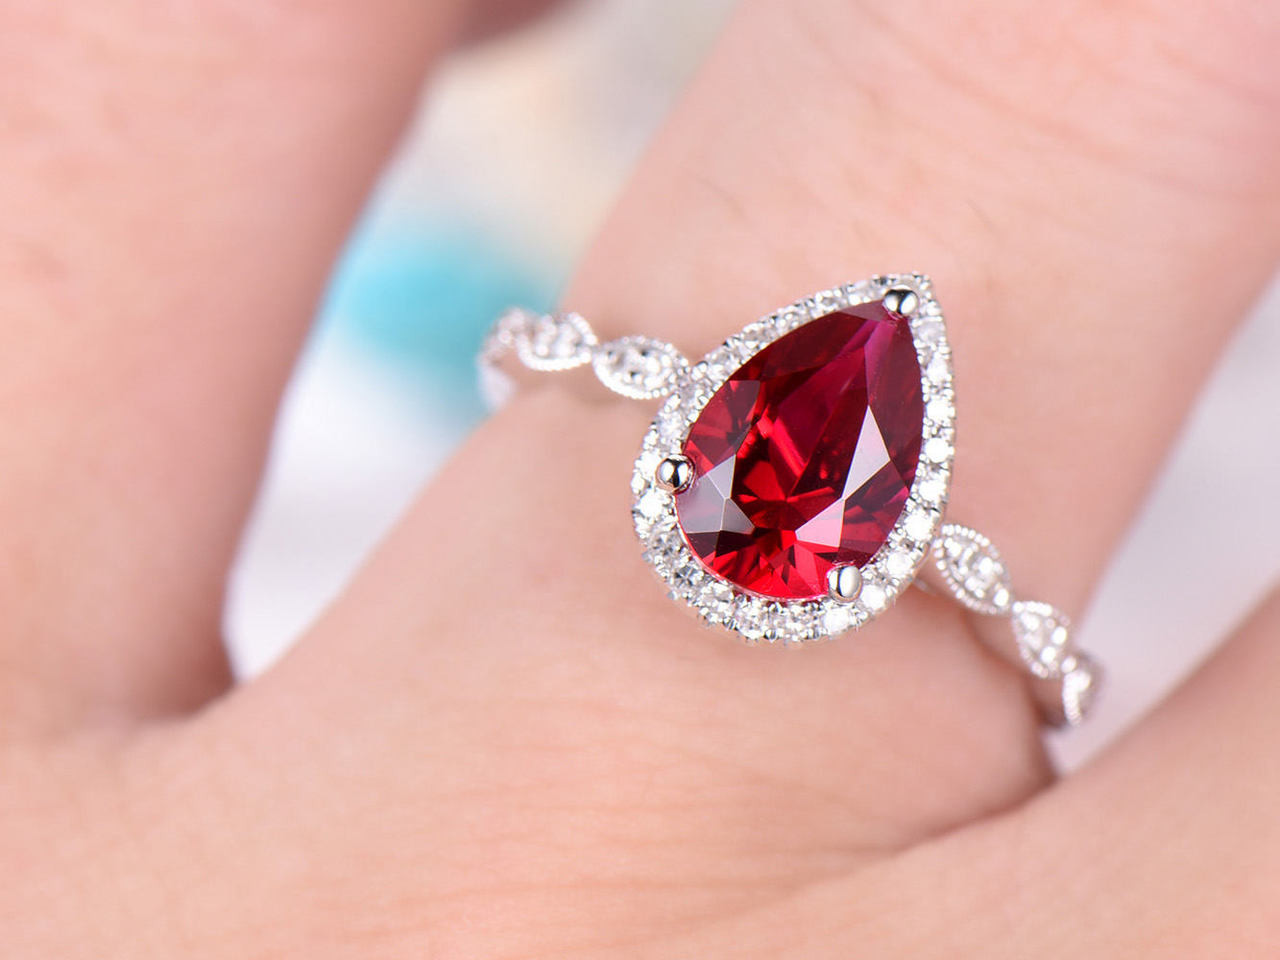 Engrossing Pear Cut Ruby Engagement Pear Cut Ruby Engagement Ring Ruby Engagement Rings Amazon Ruby Engagement Rings On Hand wedding rings Ruby Engagement Rings